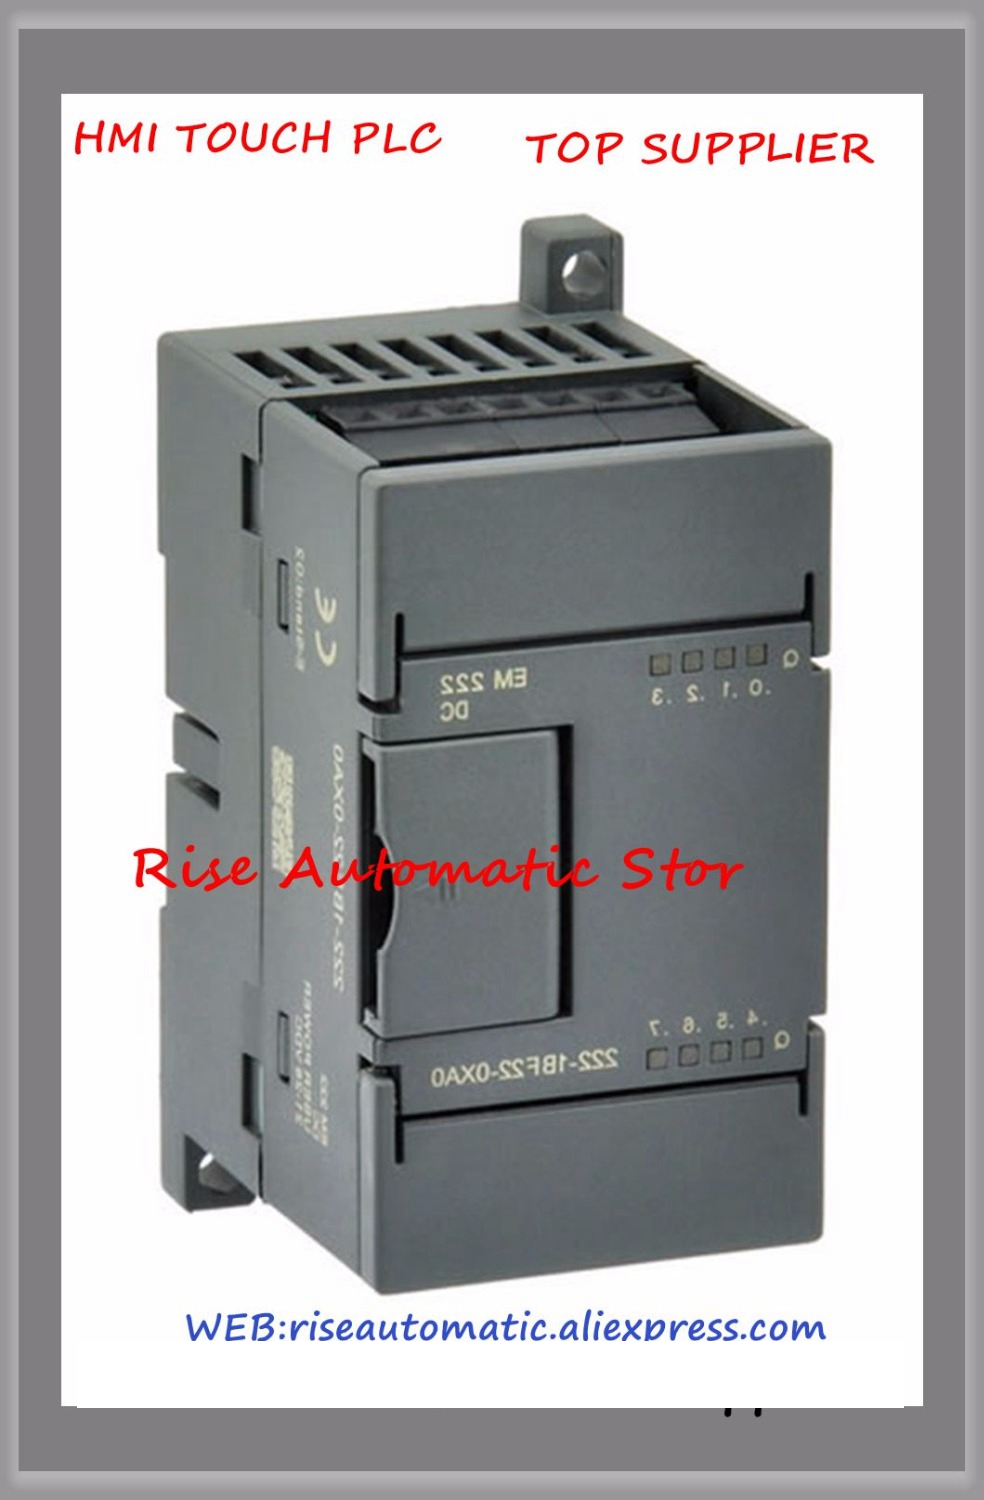 New Original PLC Module 6ES7 222-1BF22-0XA0 100% test good quality стоимость